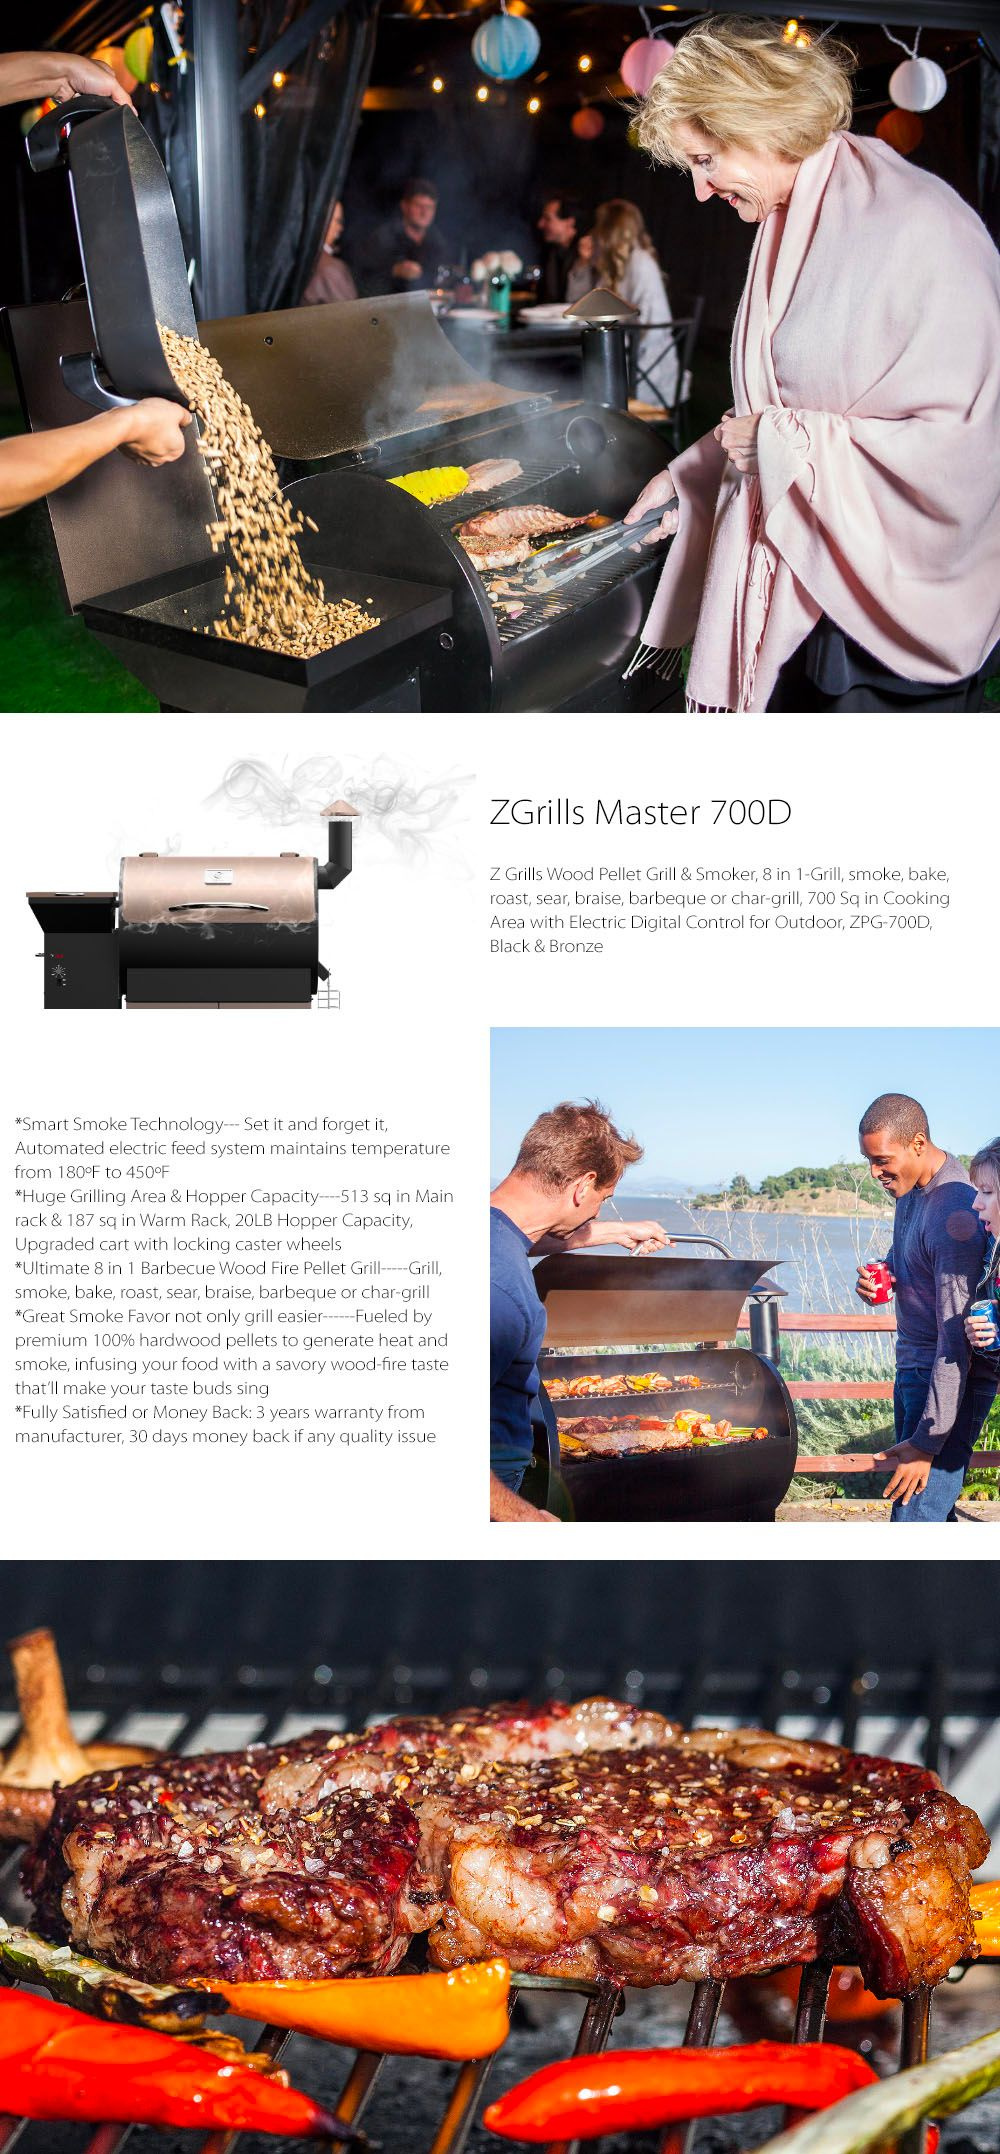 Z Grills Master 700D Free Protective Patio Cover